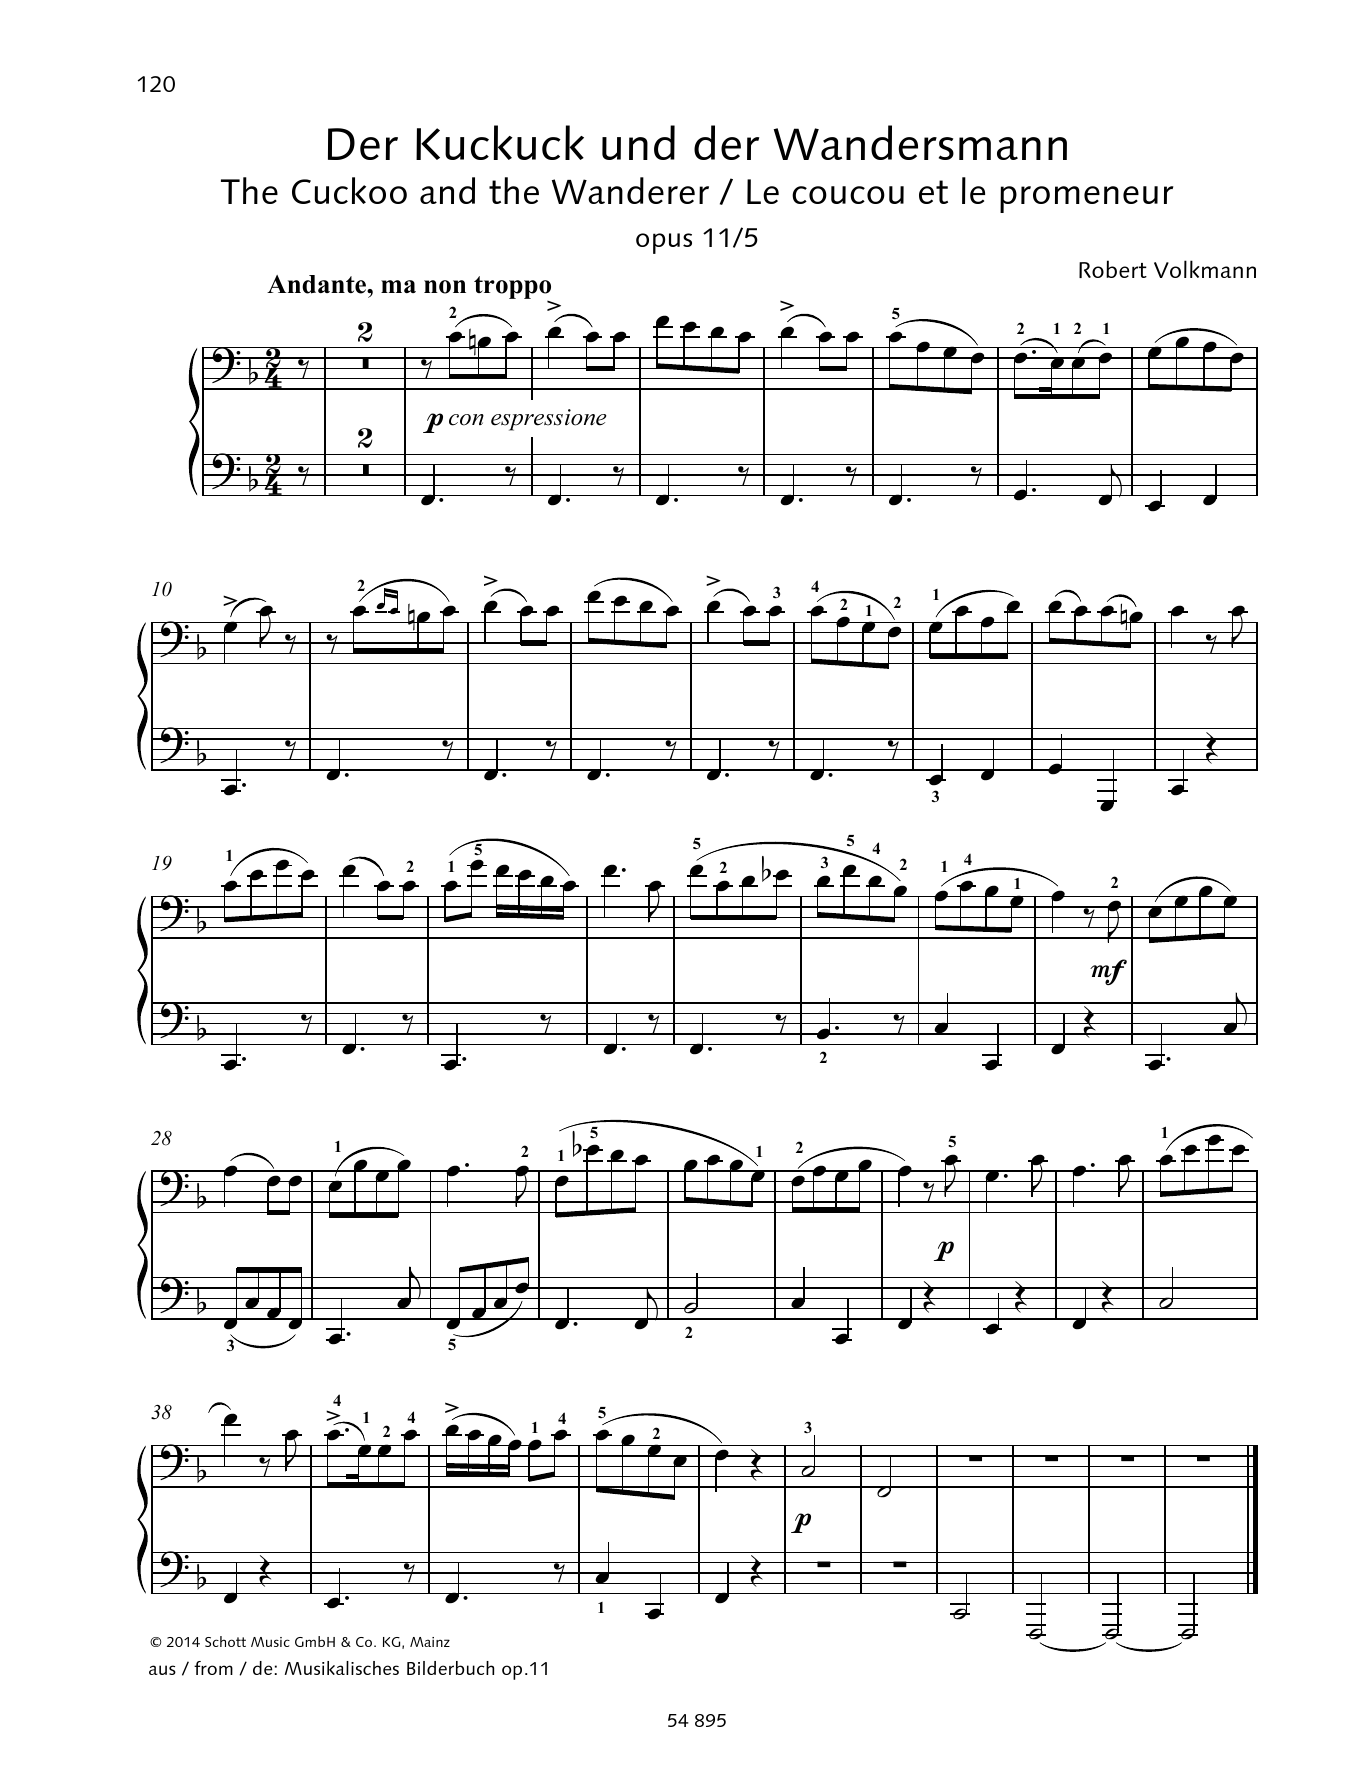 The Cuckoo and the Wanderer Sheet Music